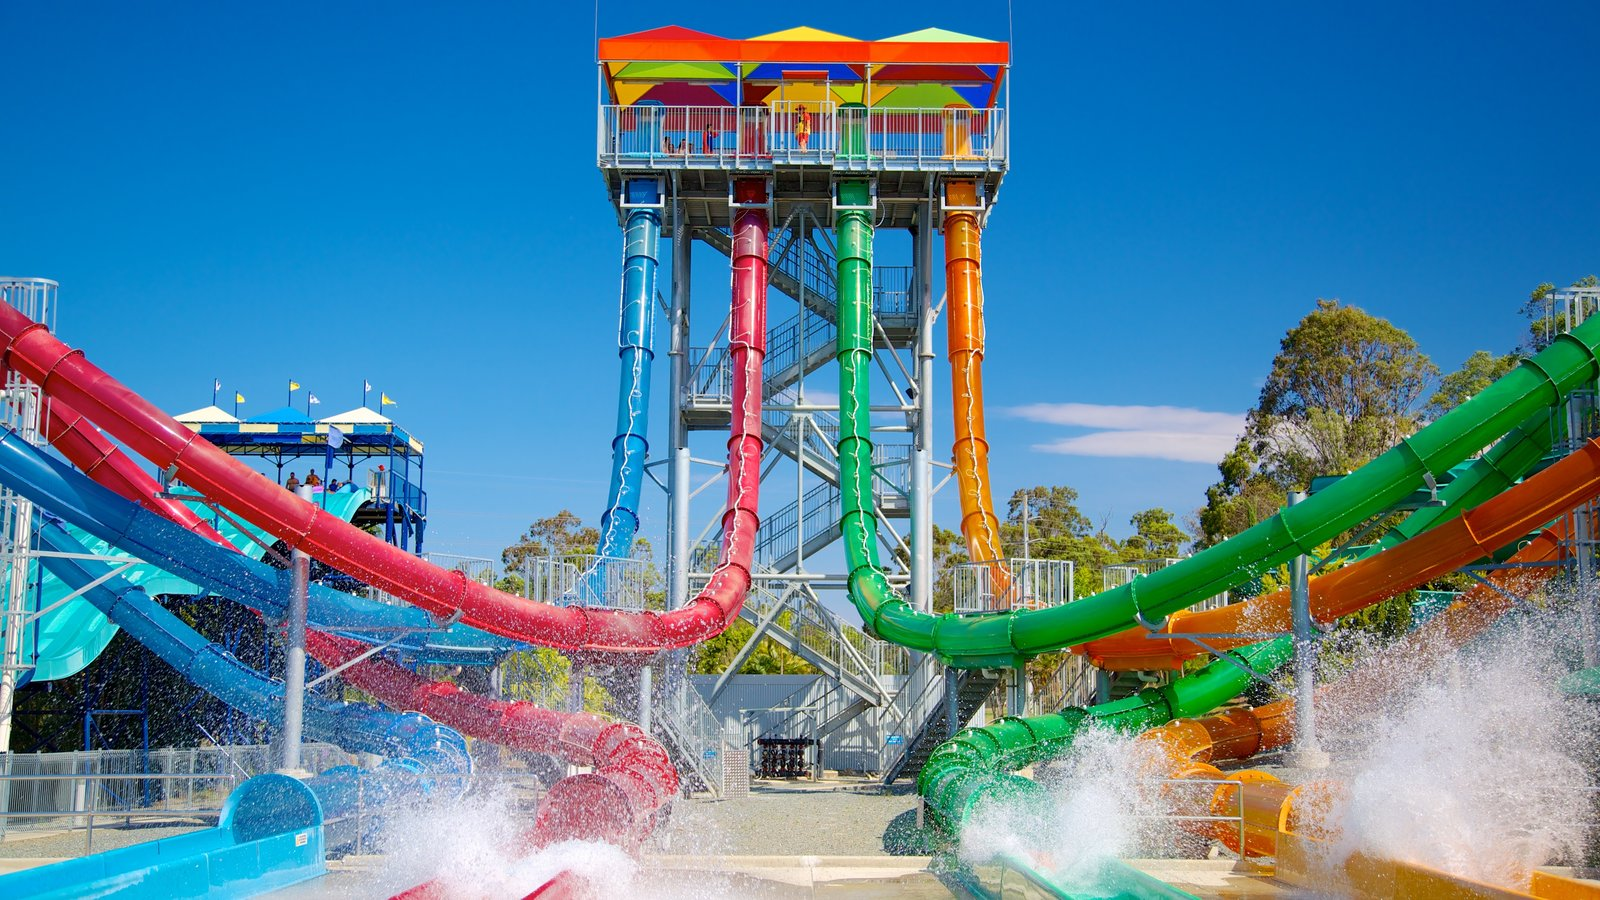 wild water get soaked Wet 'n' wild water park is located in northwest phoenix find out how to get there and what to expect when you visit arizona's largest water park.